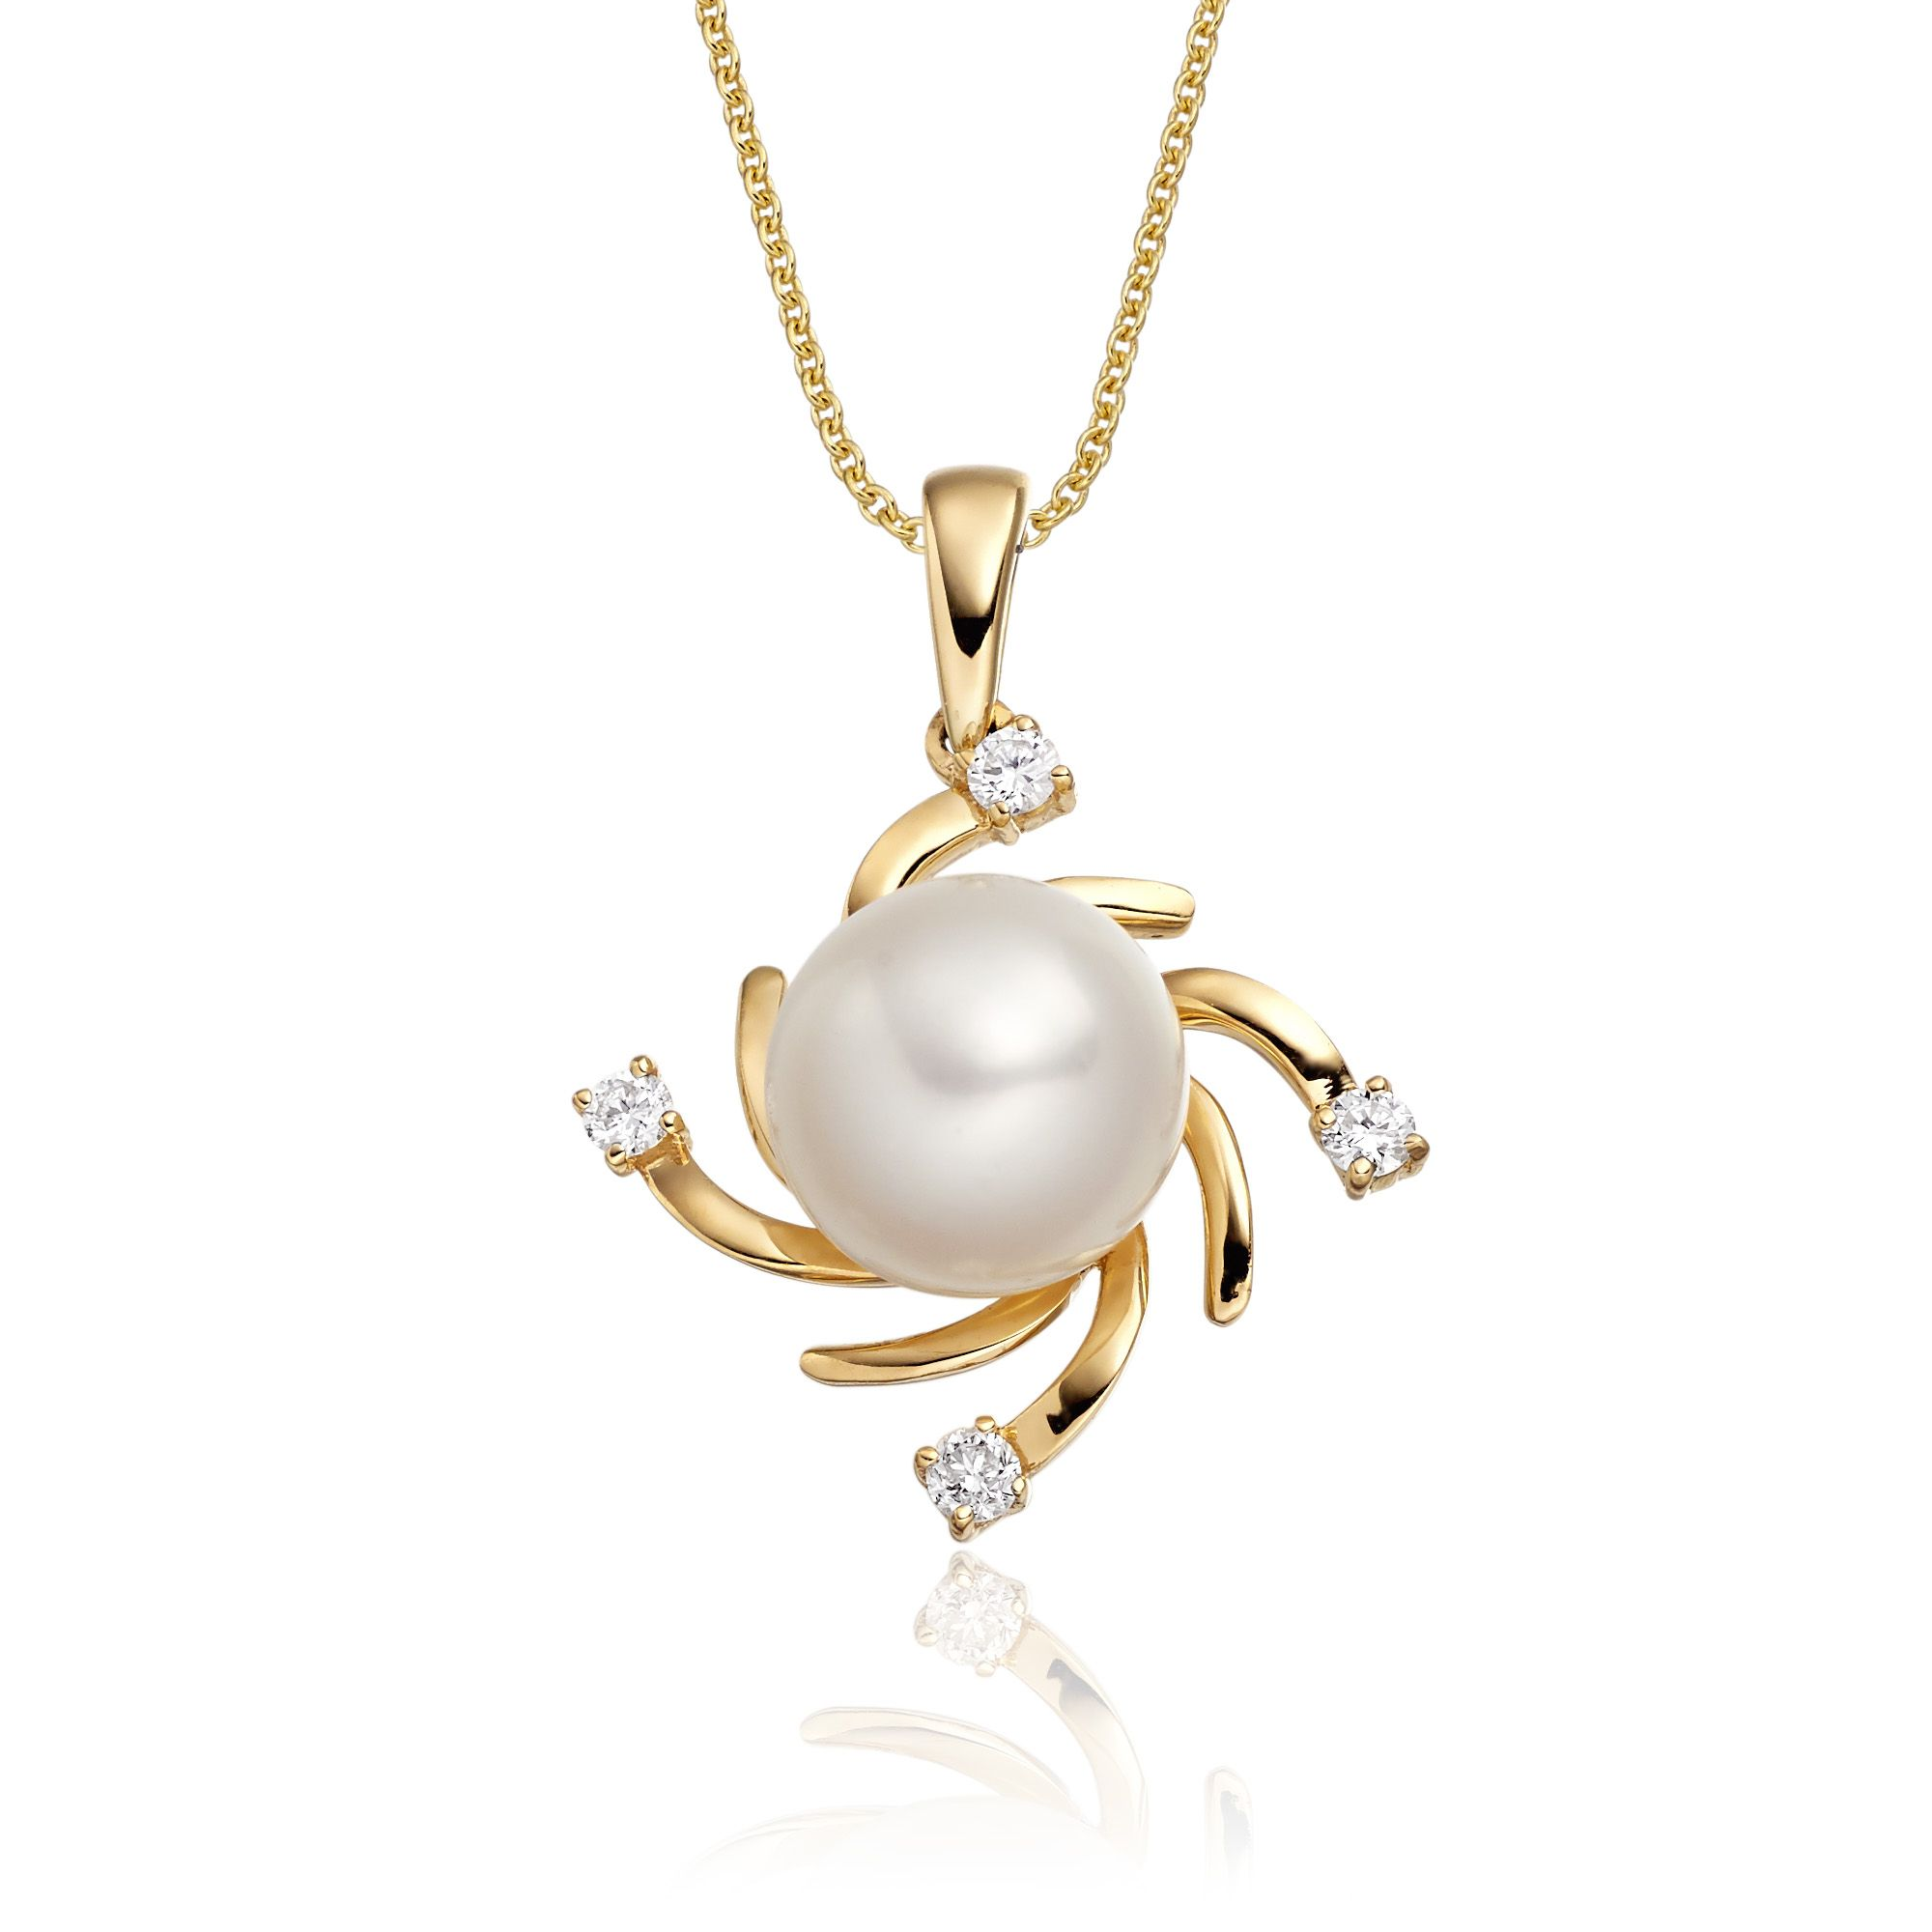 This elegant freshwater cultured pearl and diamond necklace has